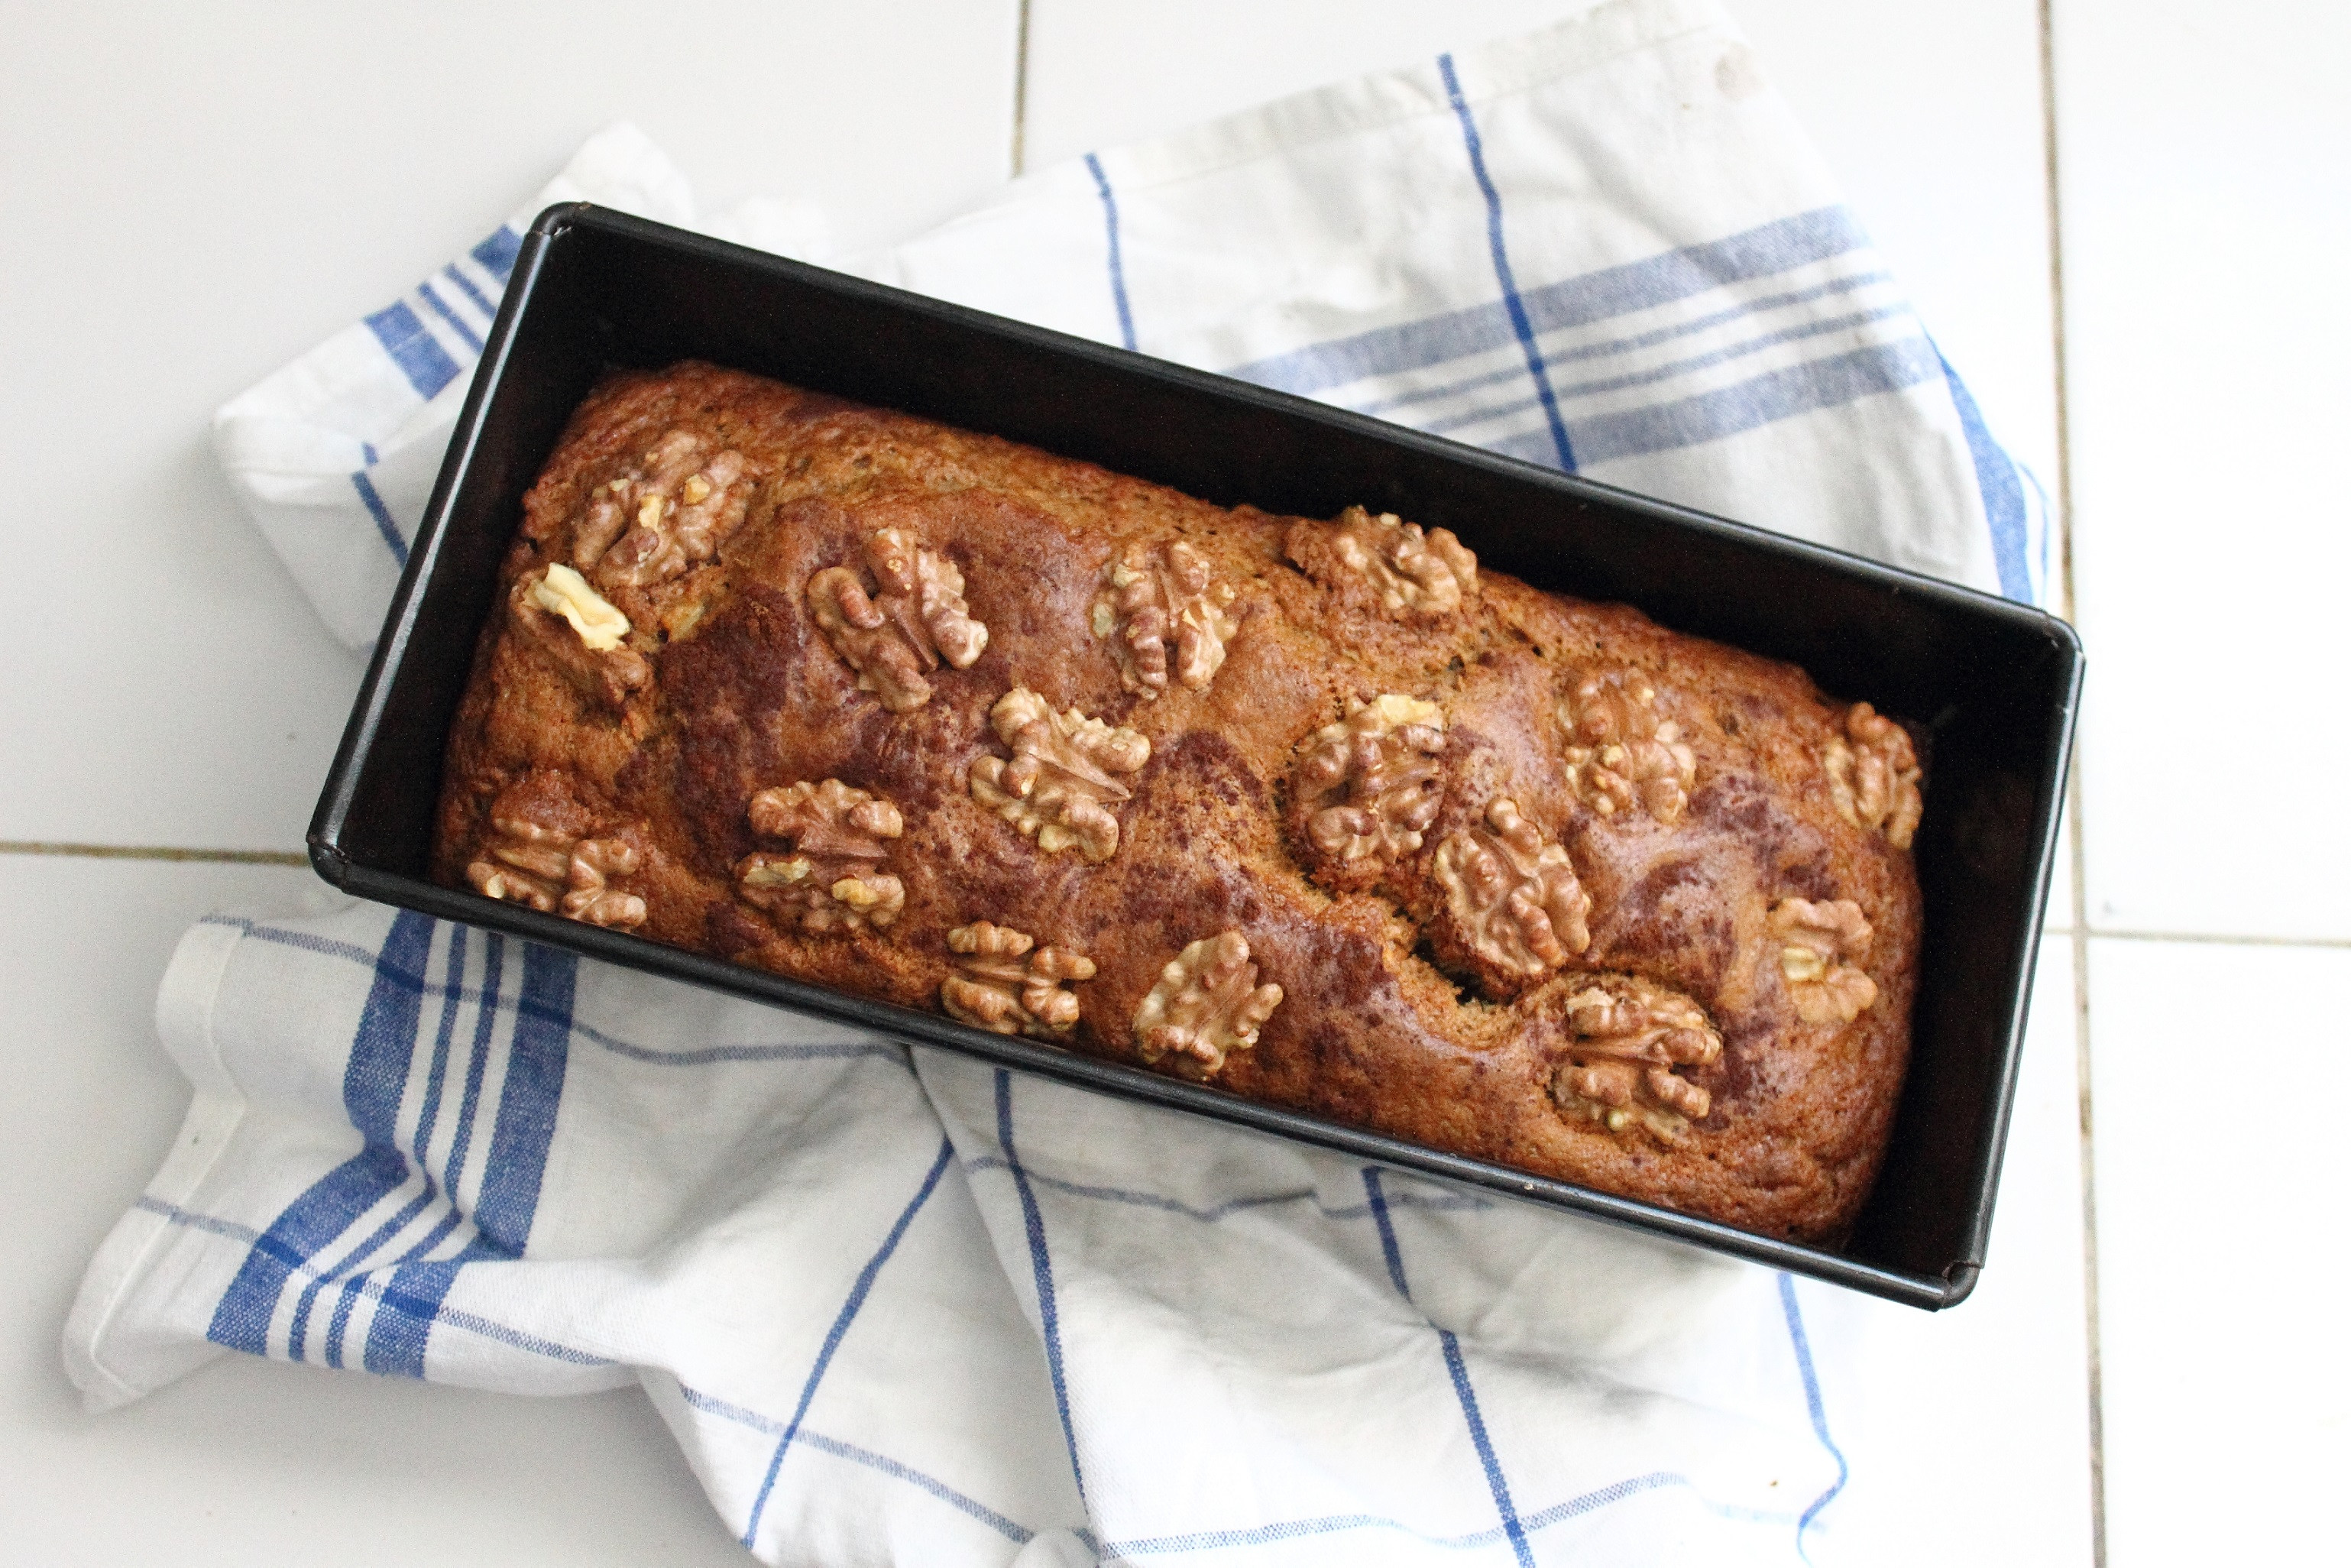 Best Healthy Bread Recipe  BEST HEALTHY BANANA BREAD RECIPE Style Over Function